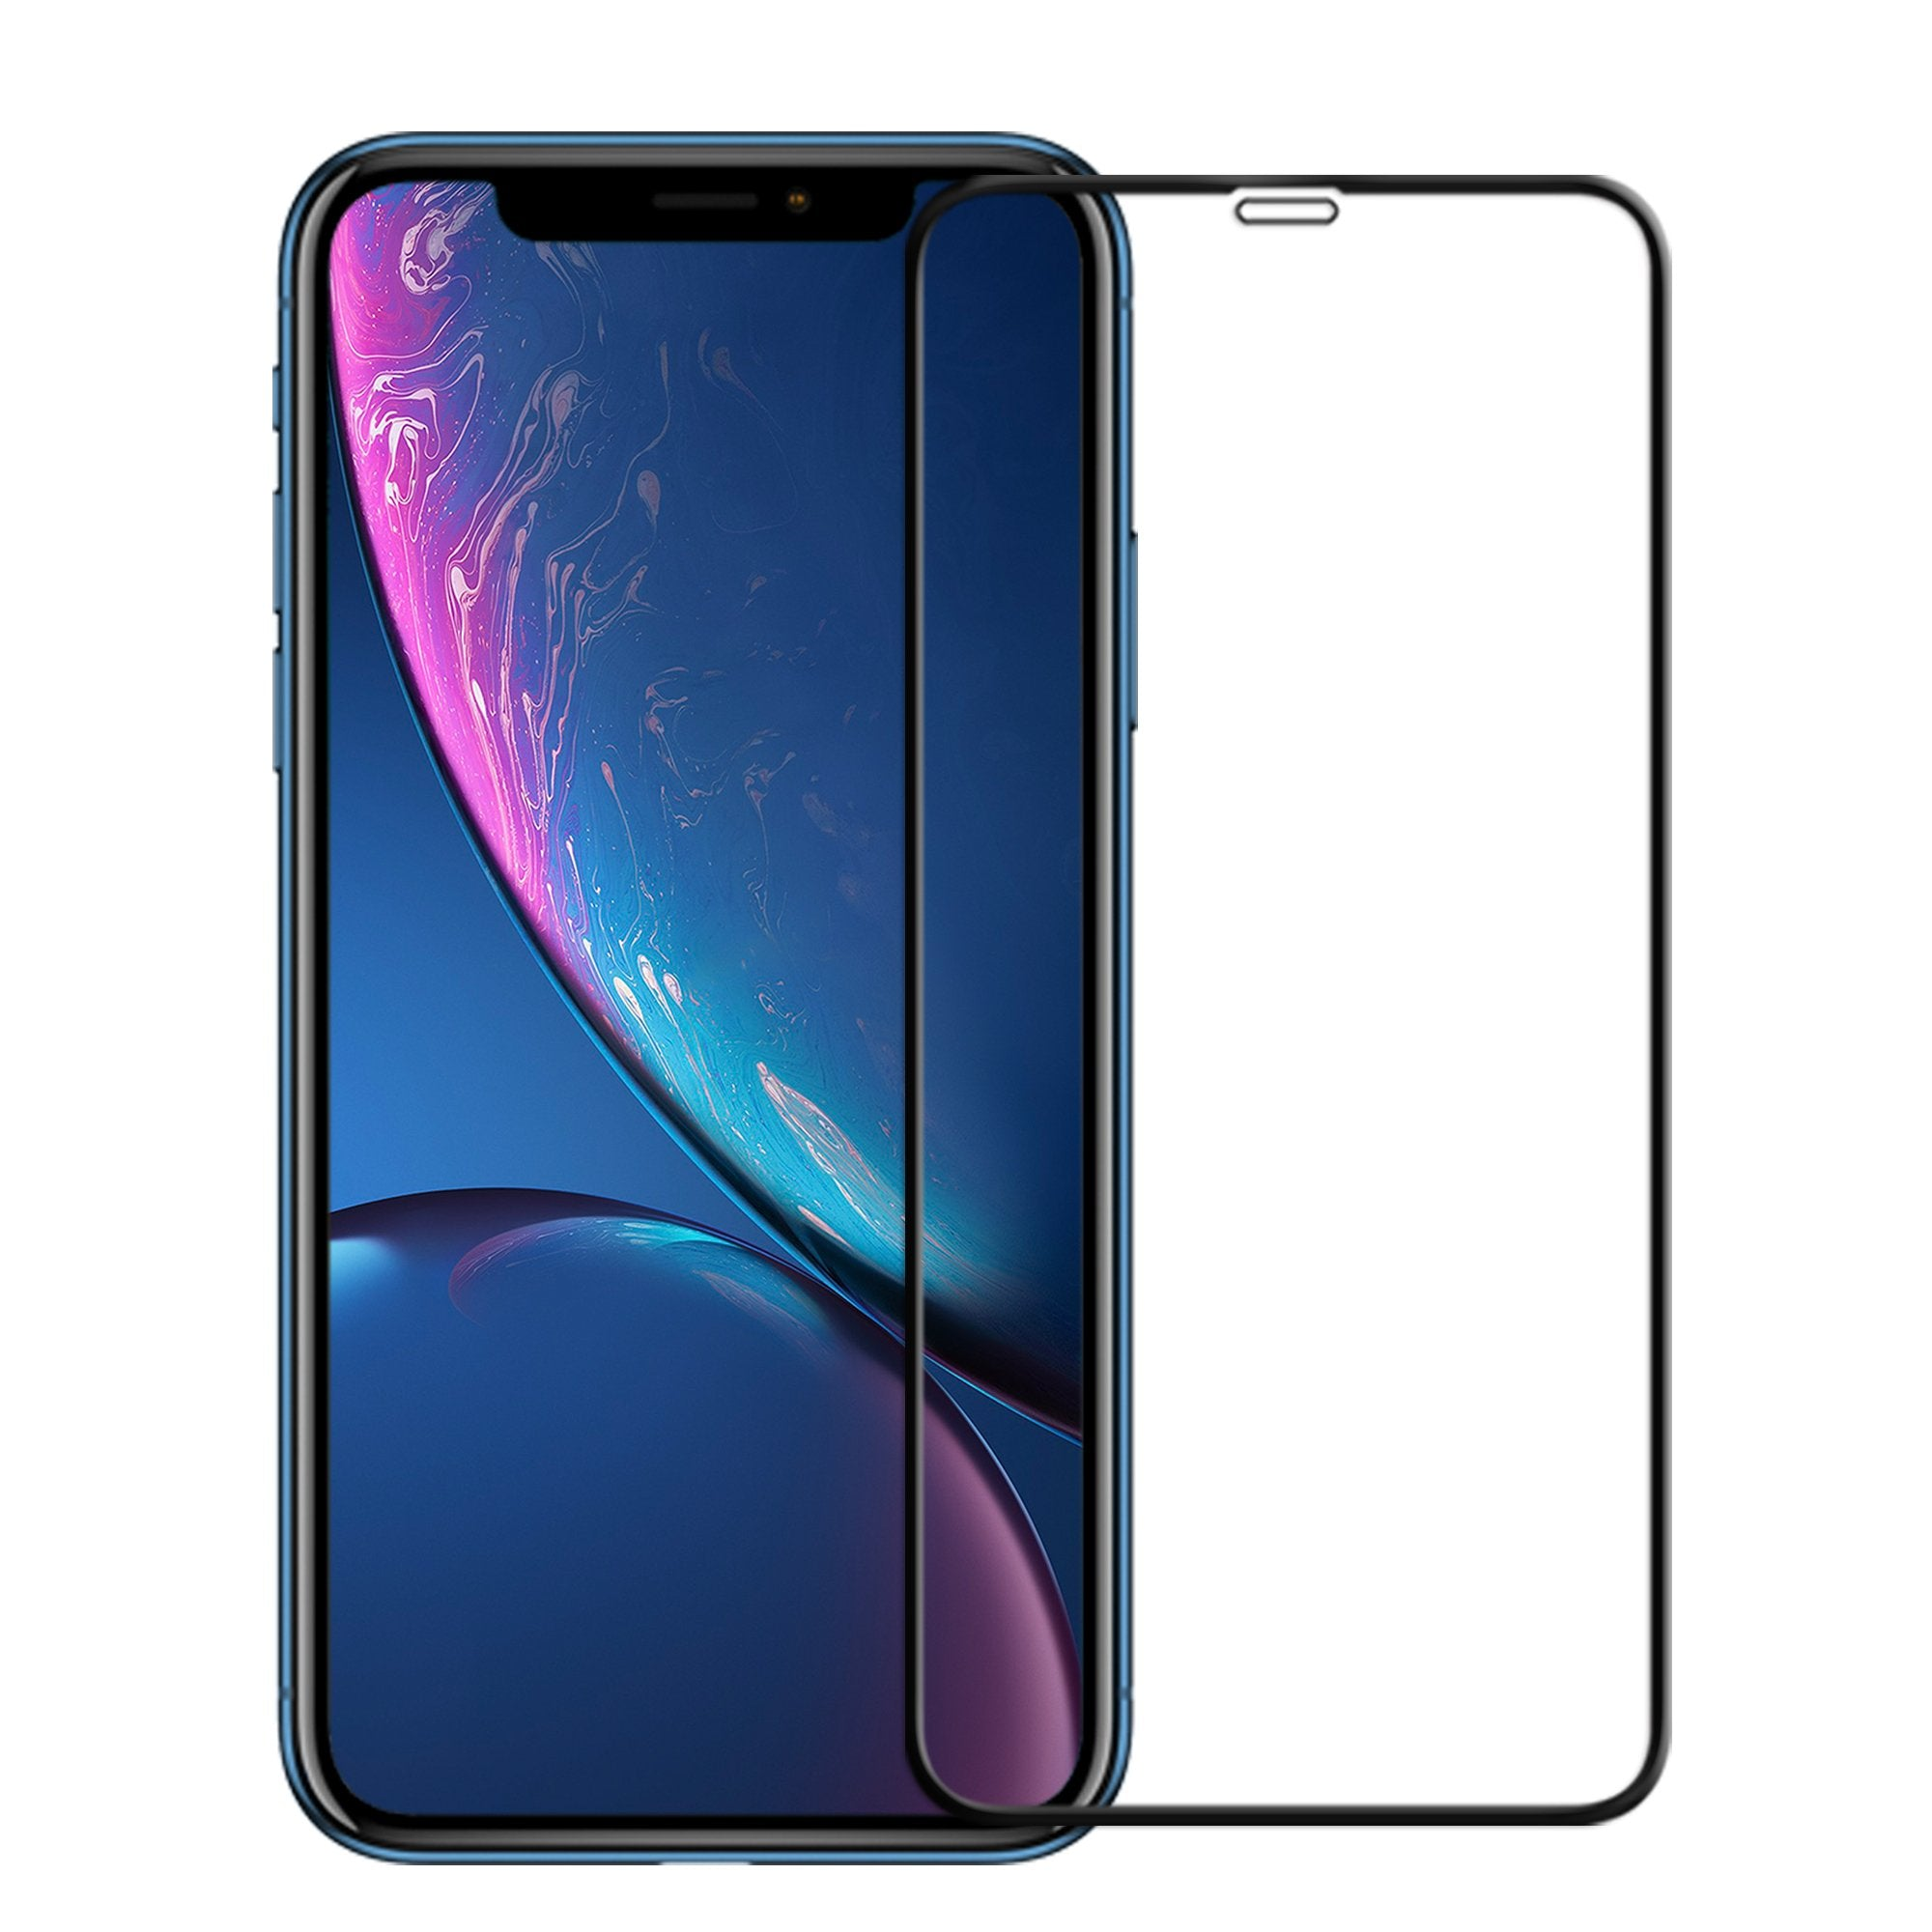 FLOLAB NanoArmour iPhone XR 3D Full Cover Tempered Glass Screen Protector